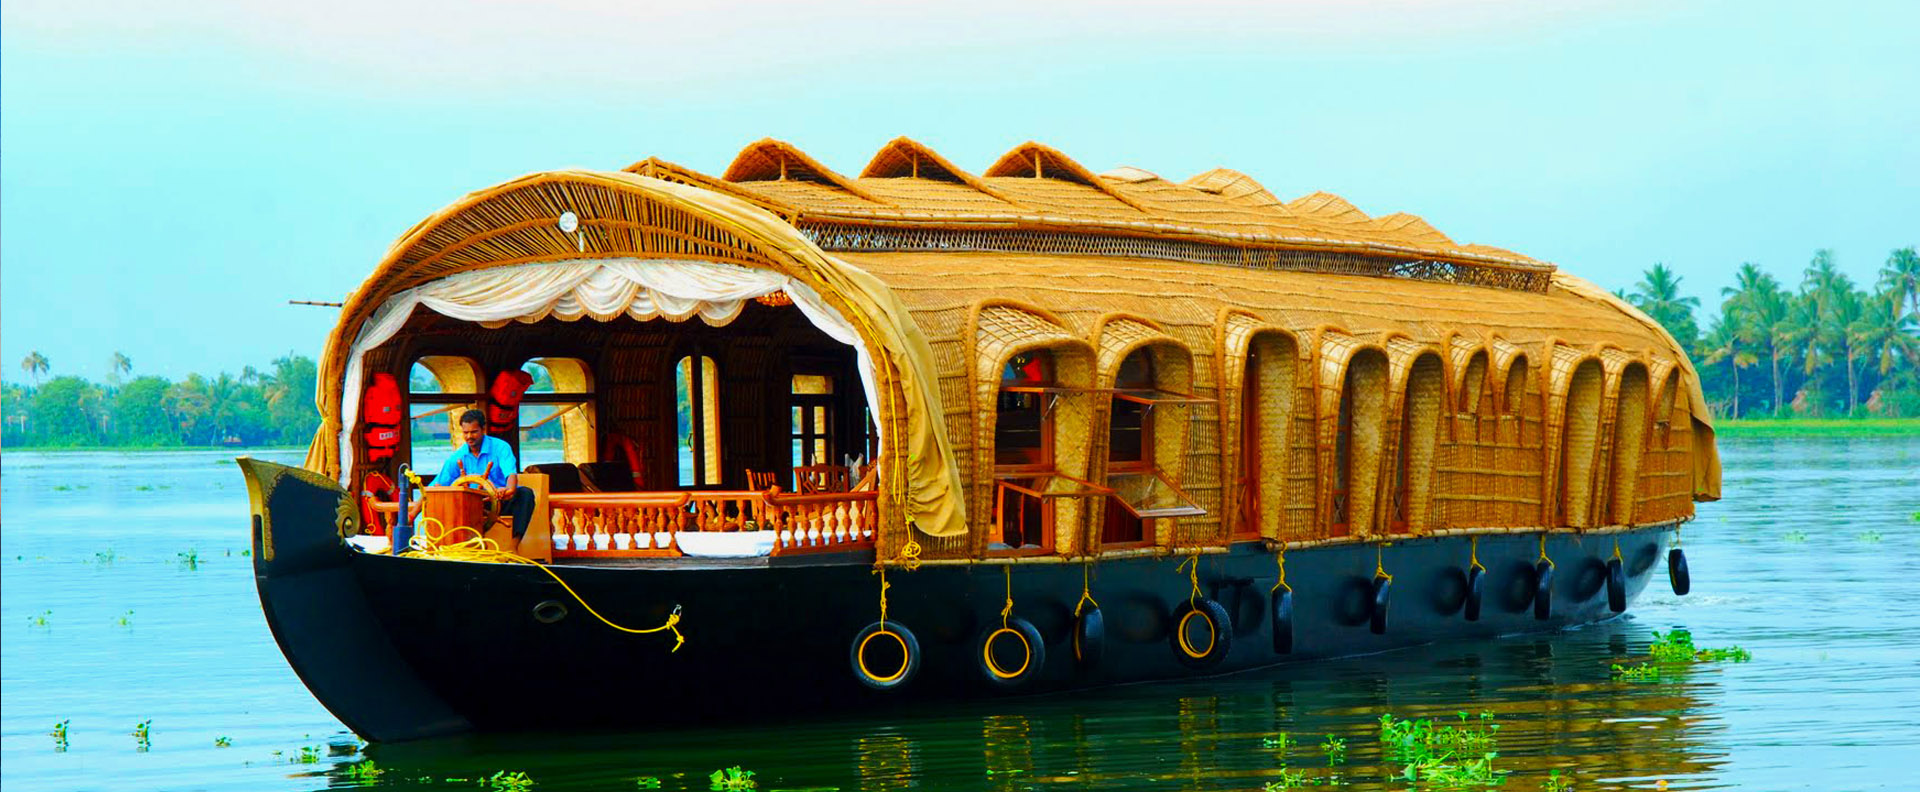 Kerala Honeymoon Packages, Munnar Tour Packages, Alleppey Tour Packages